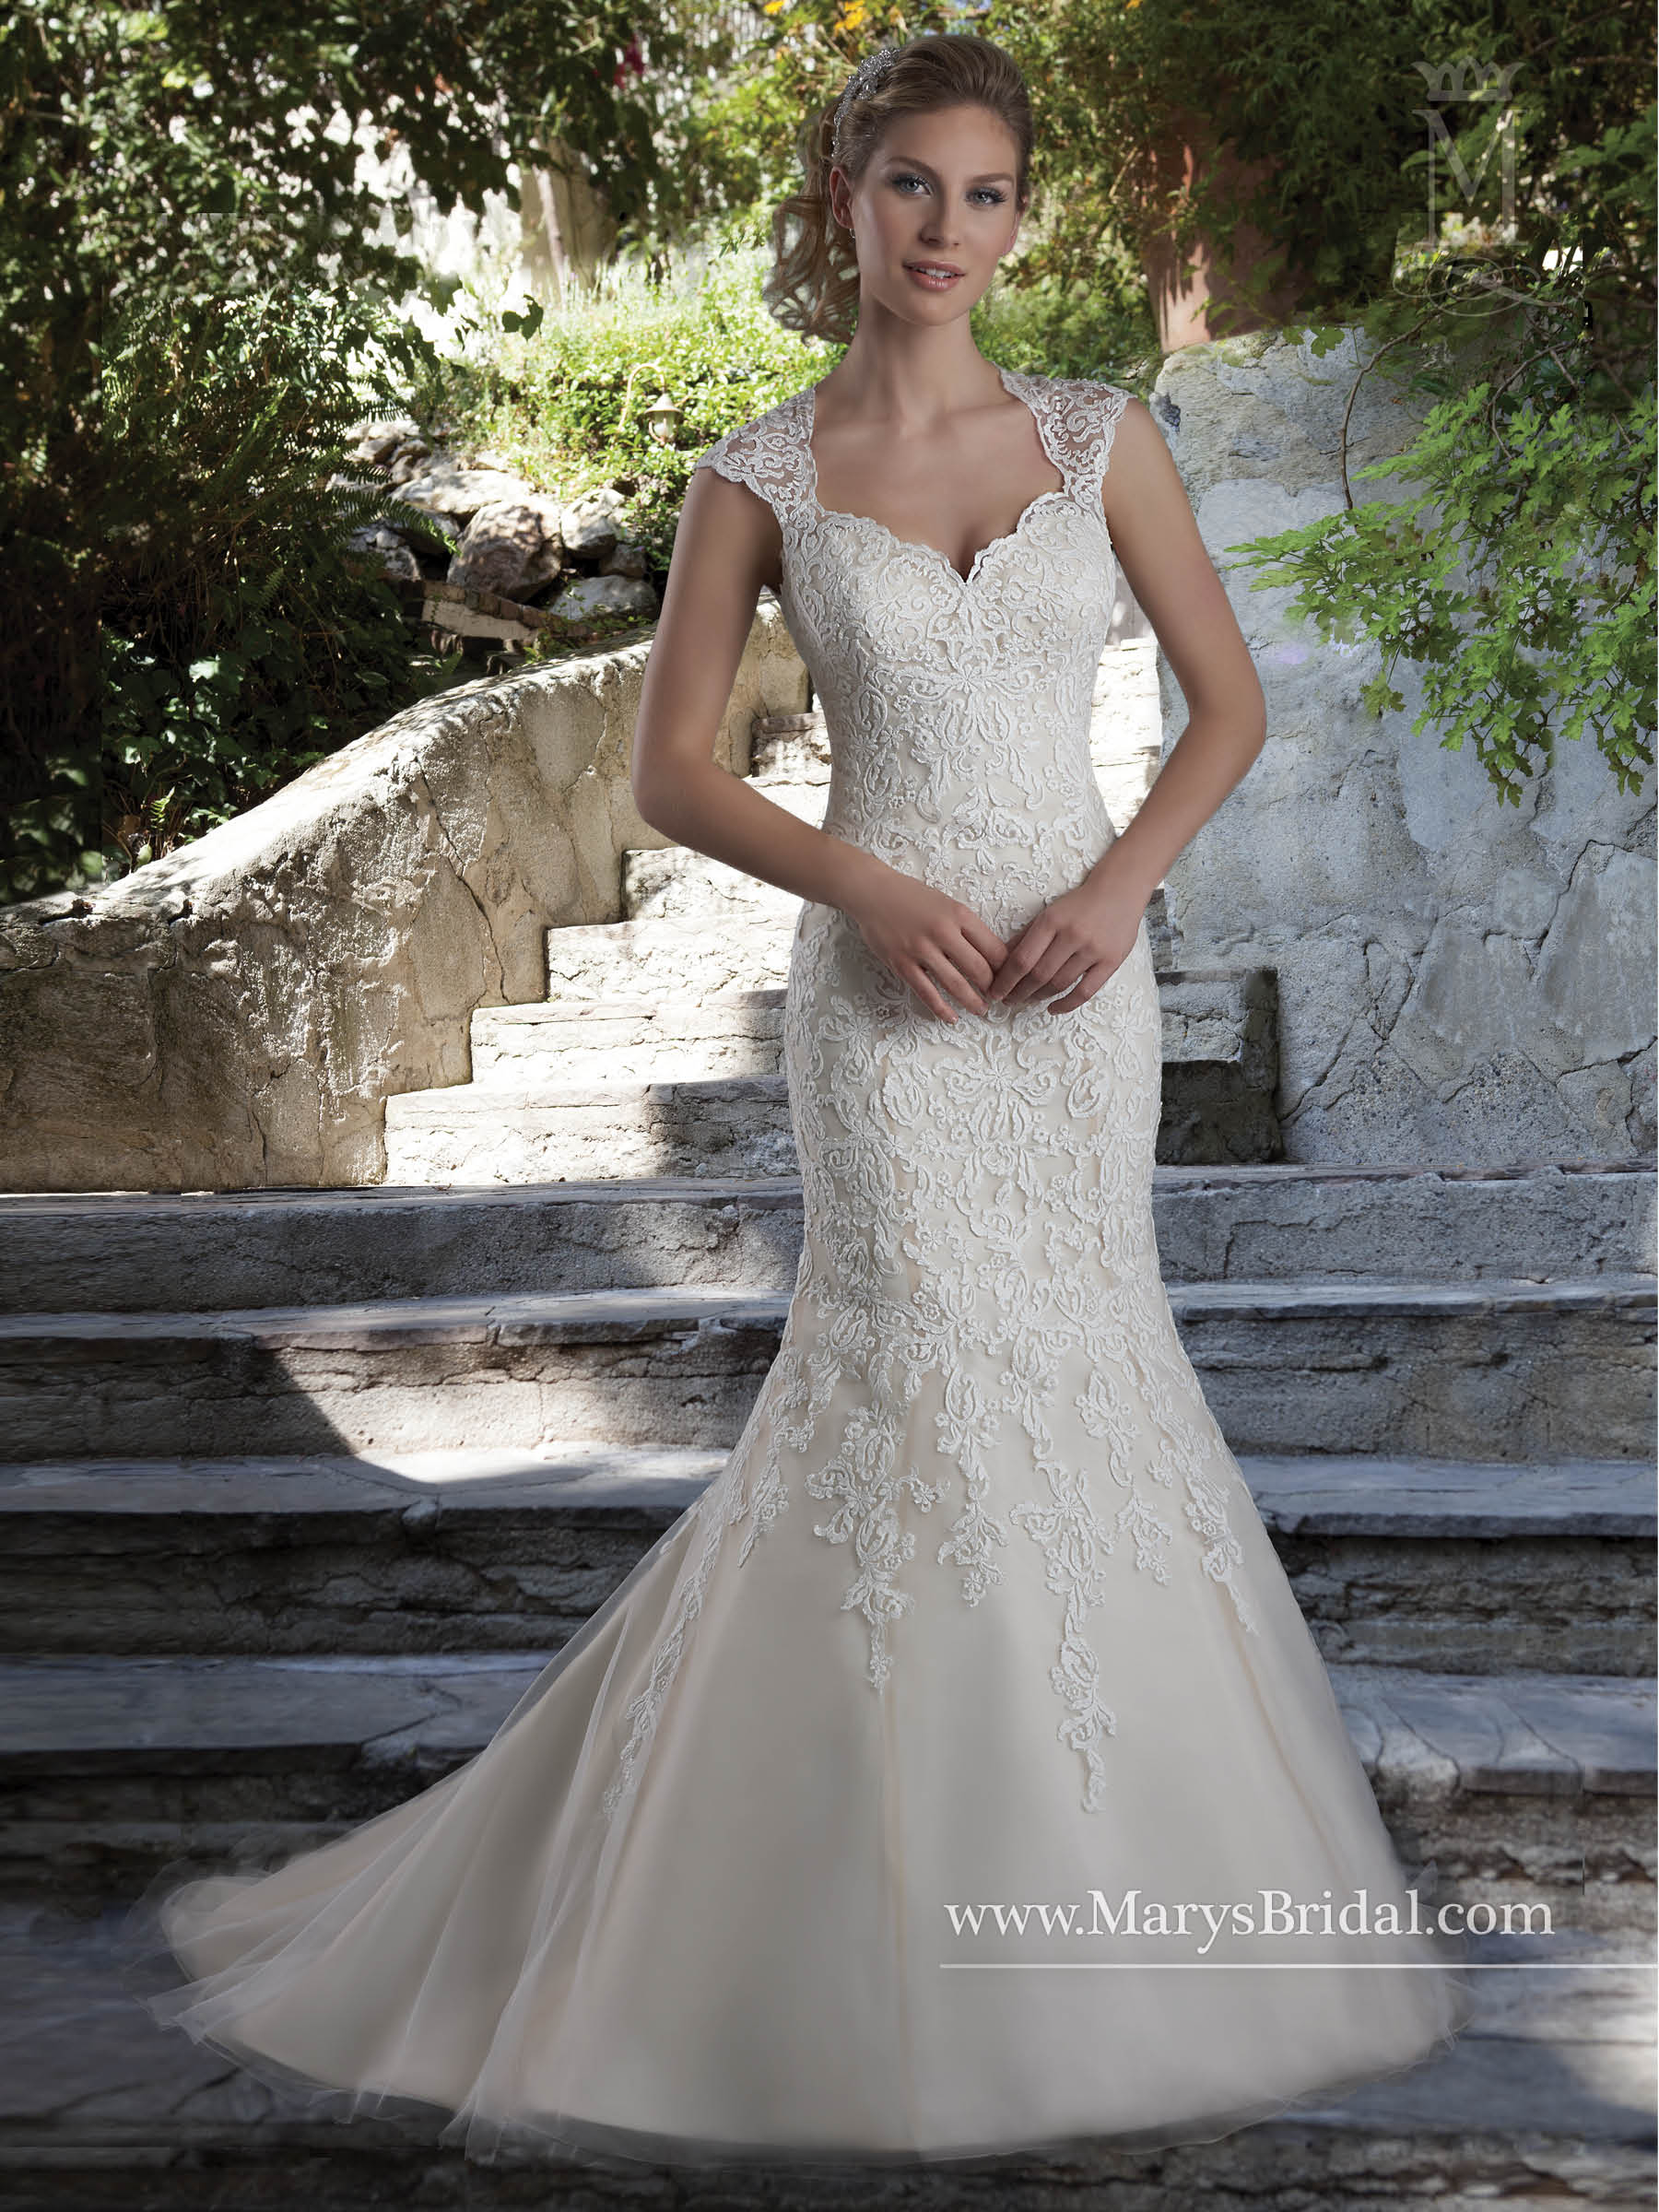 Bridal Wedding Dresses   Style - 6538 in Champagne, Ivory, or White ...